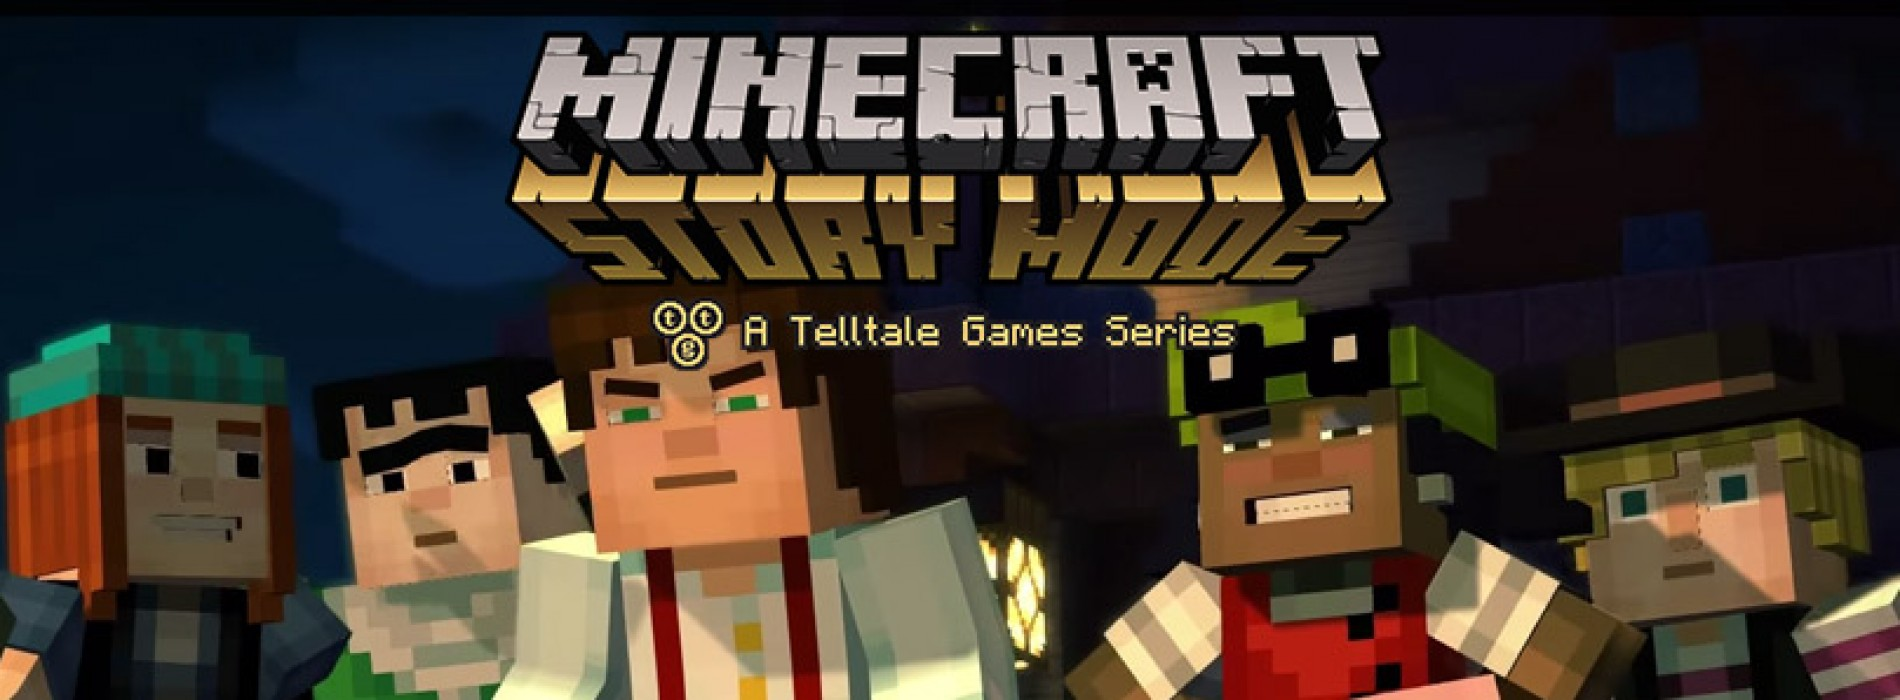 Download the new Minecraft: Story Mode from Google Play on